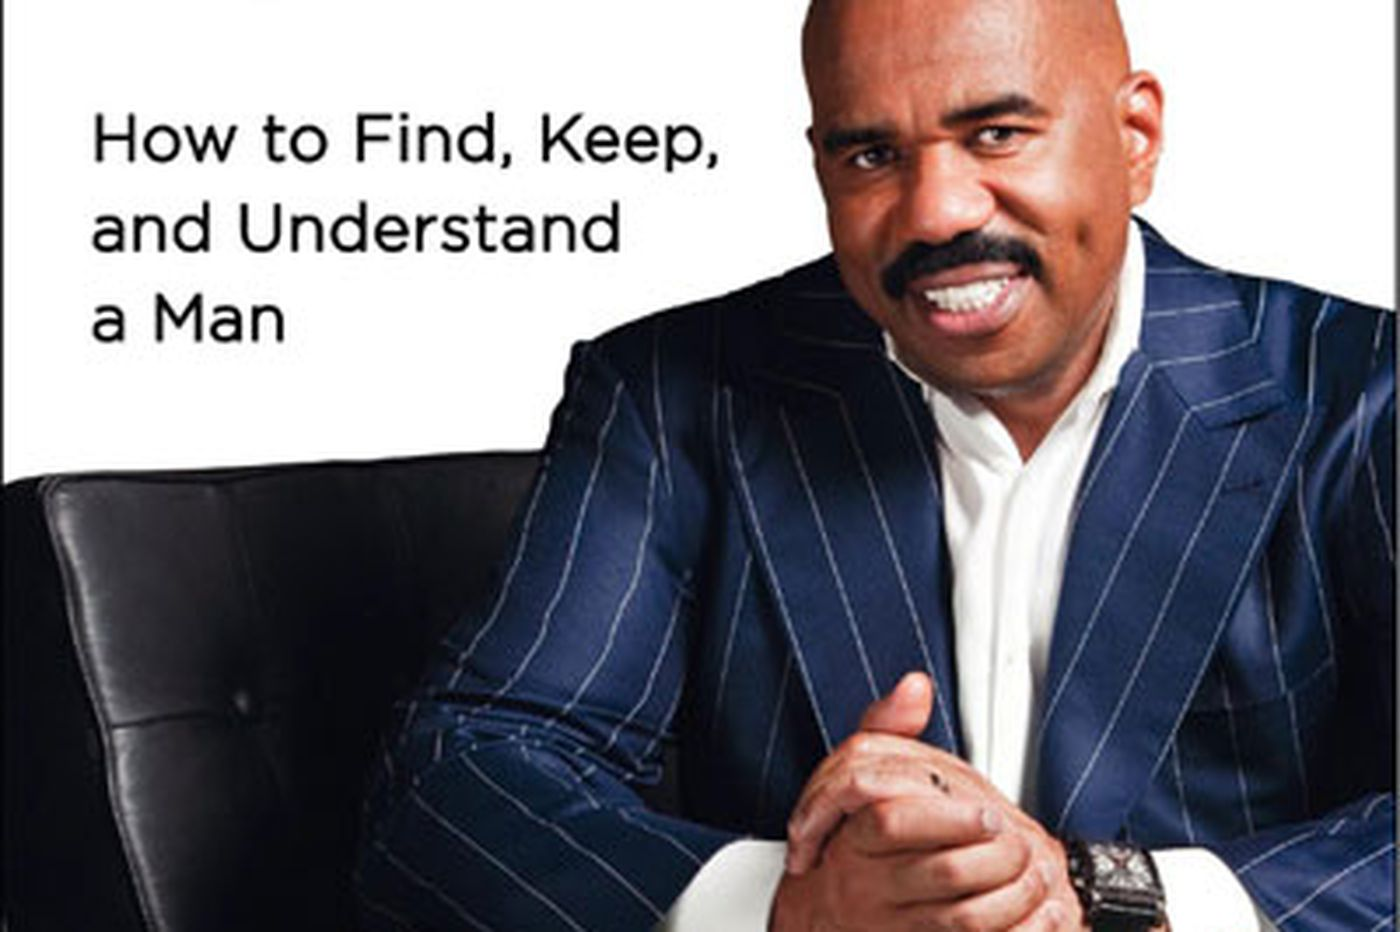 Steve Harvey's book 'Act Like a Lady, Think Like a Man' debuts in theaters Friday